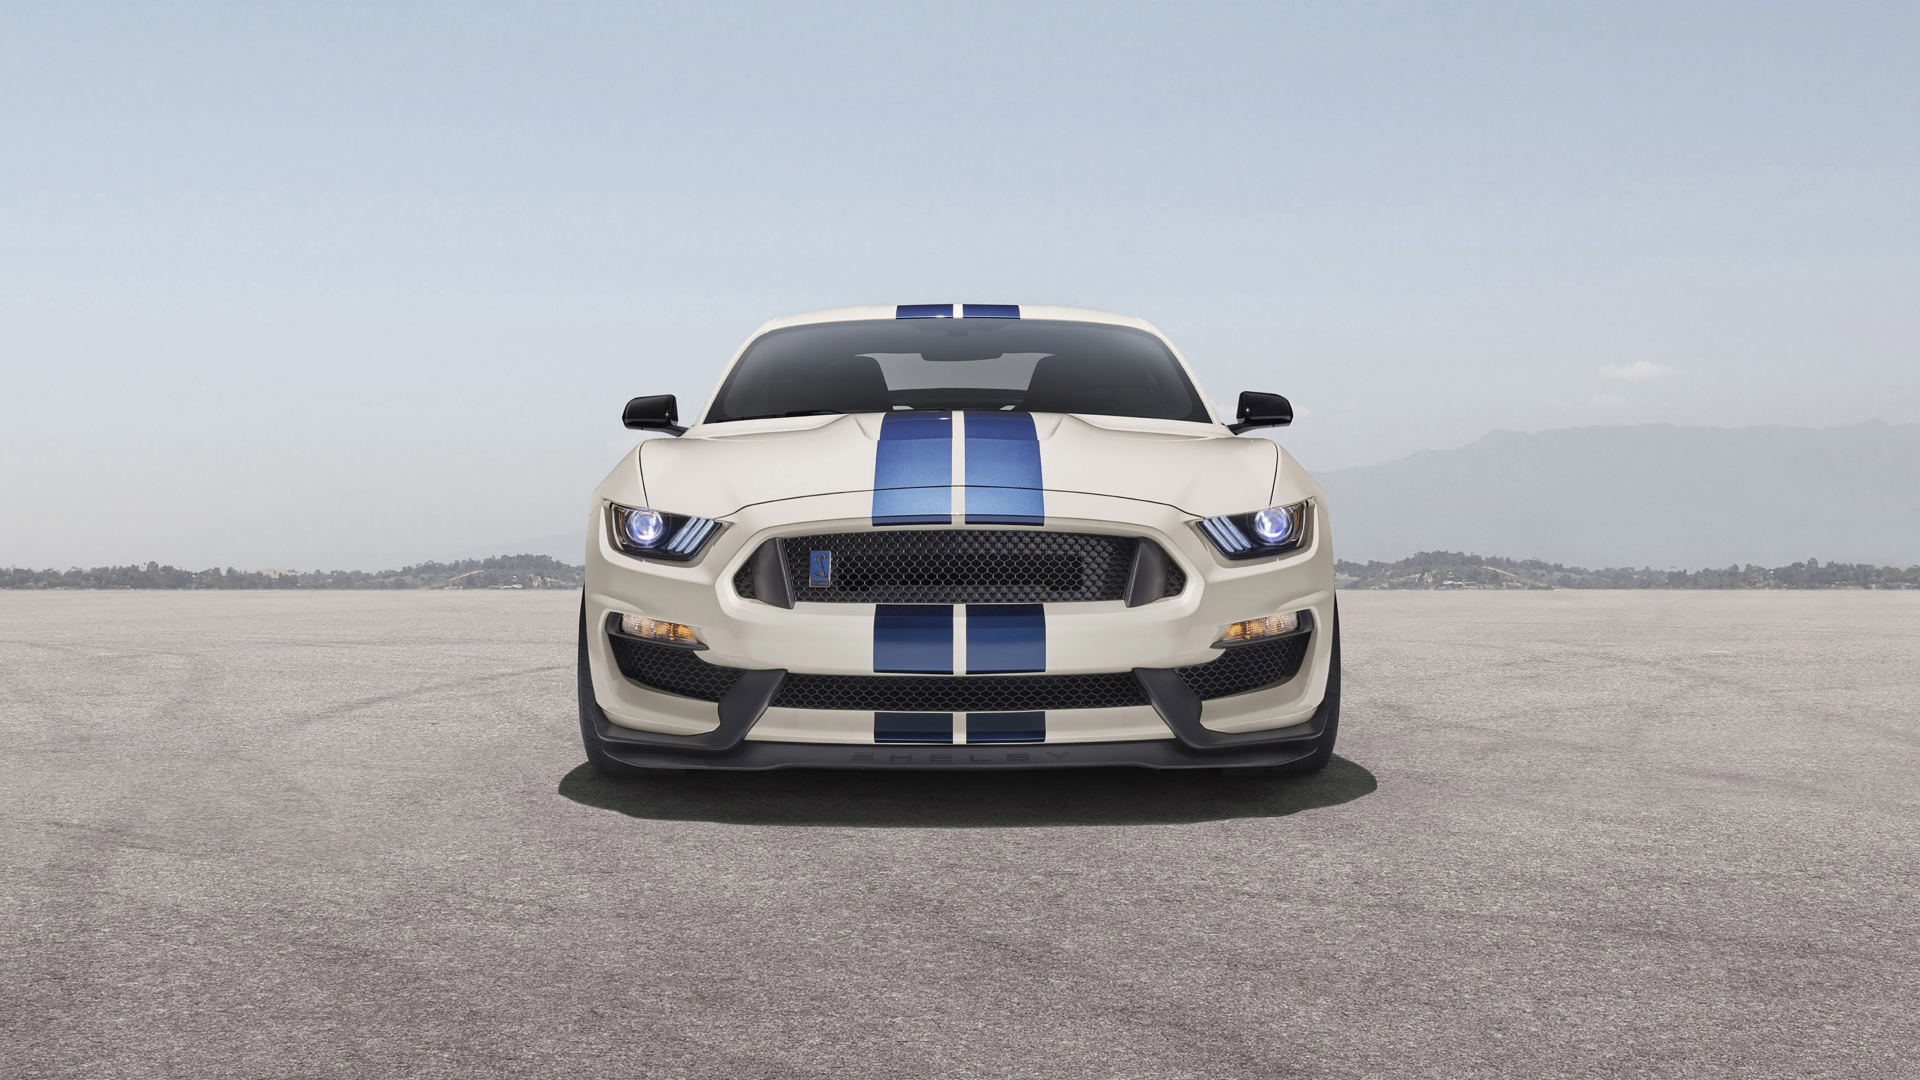 1920x1080 Ford Mustang Shelby GT350 1080P Laptop Full HD ...